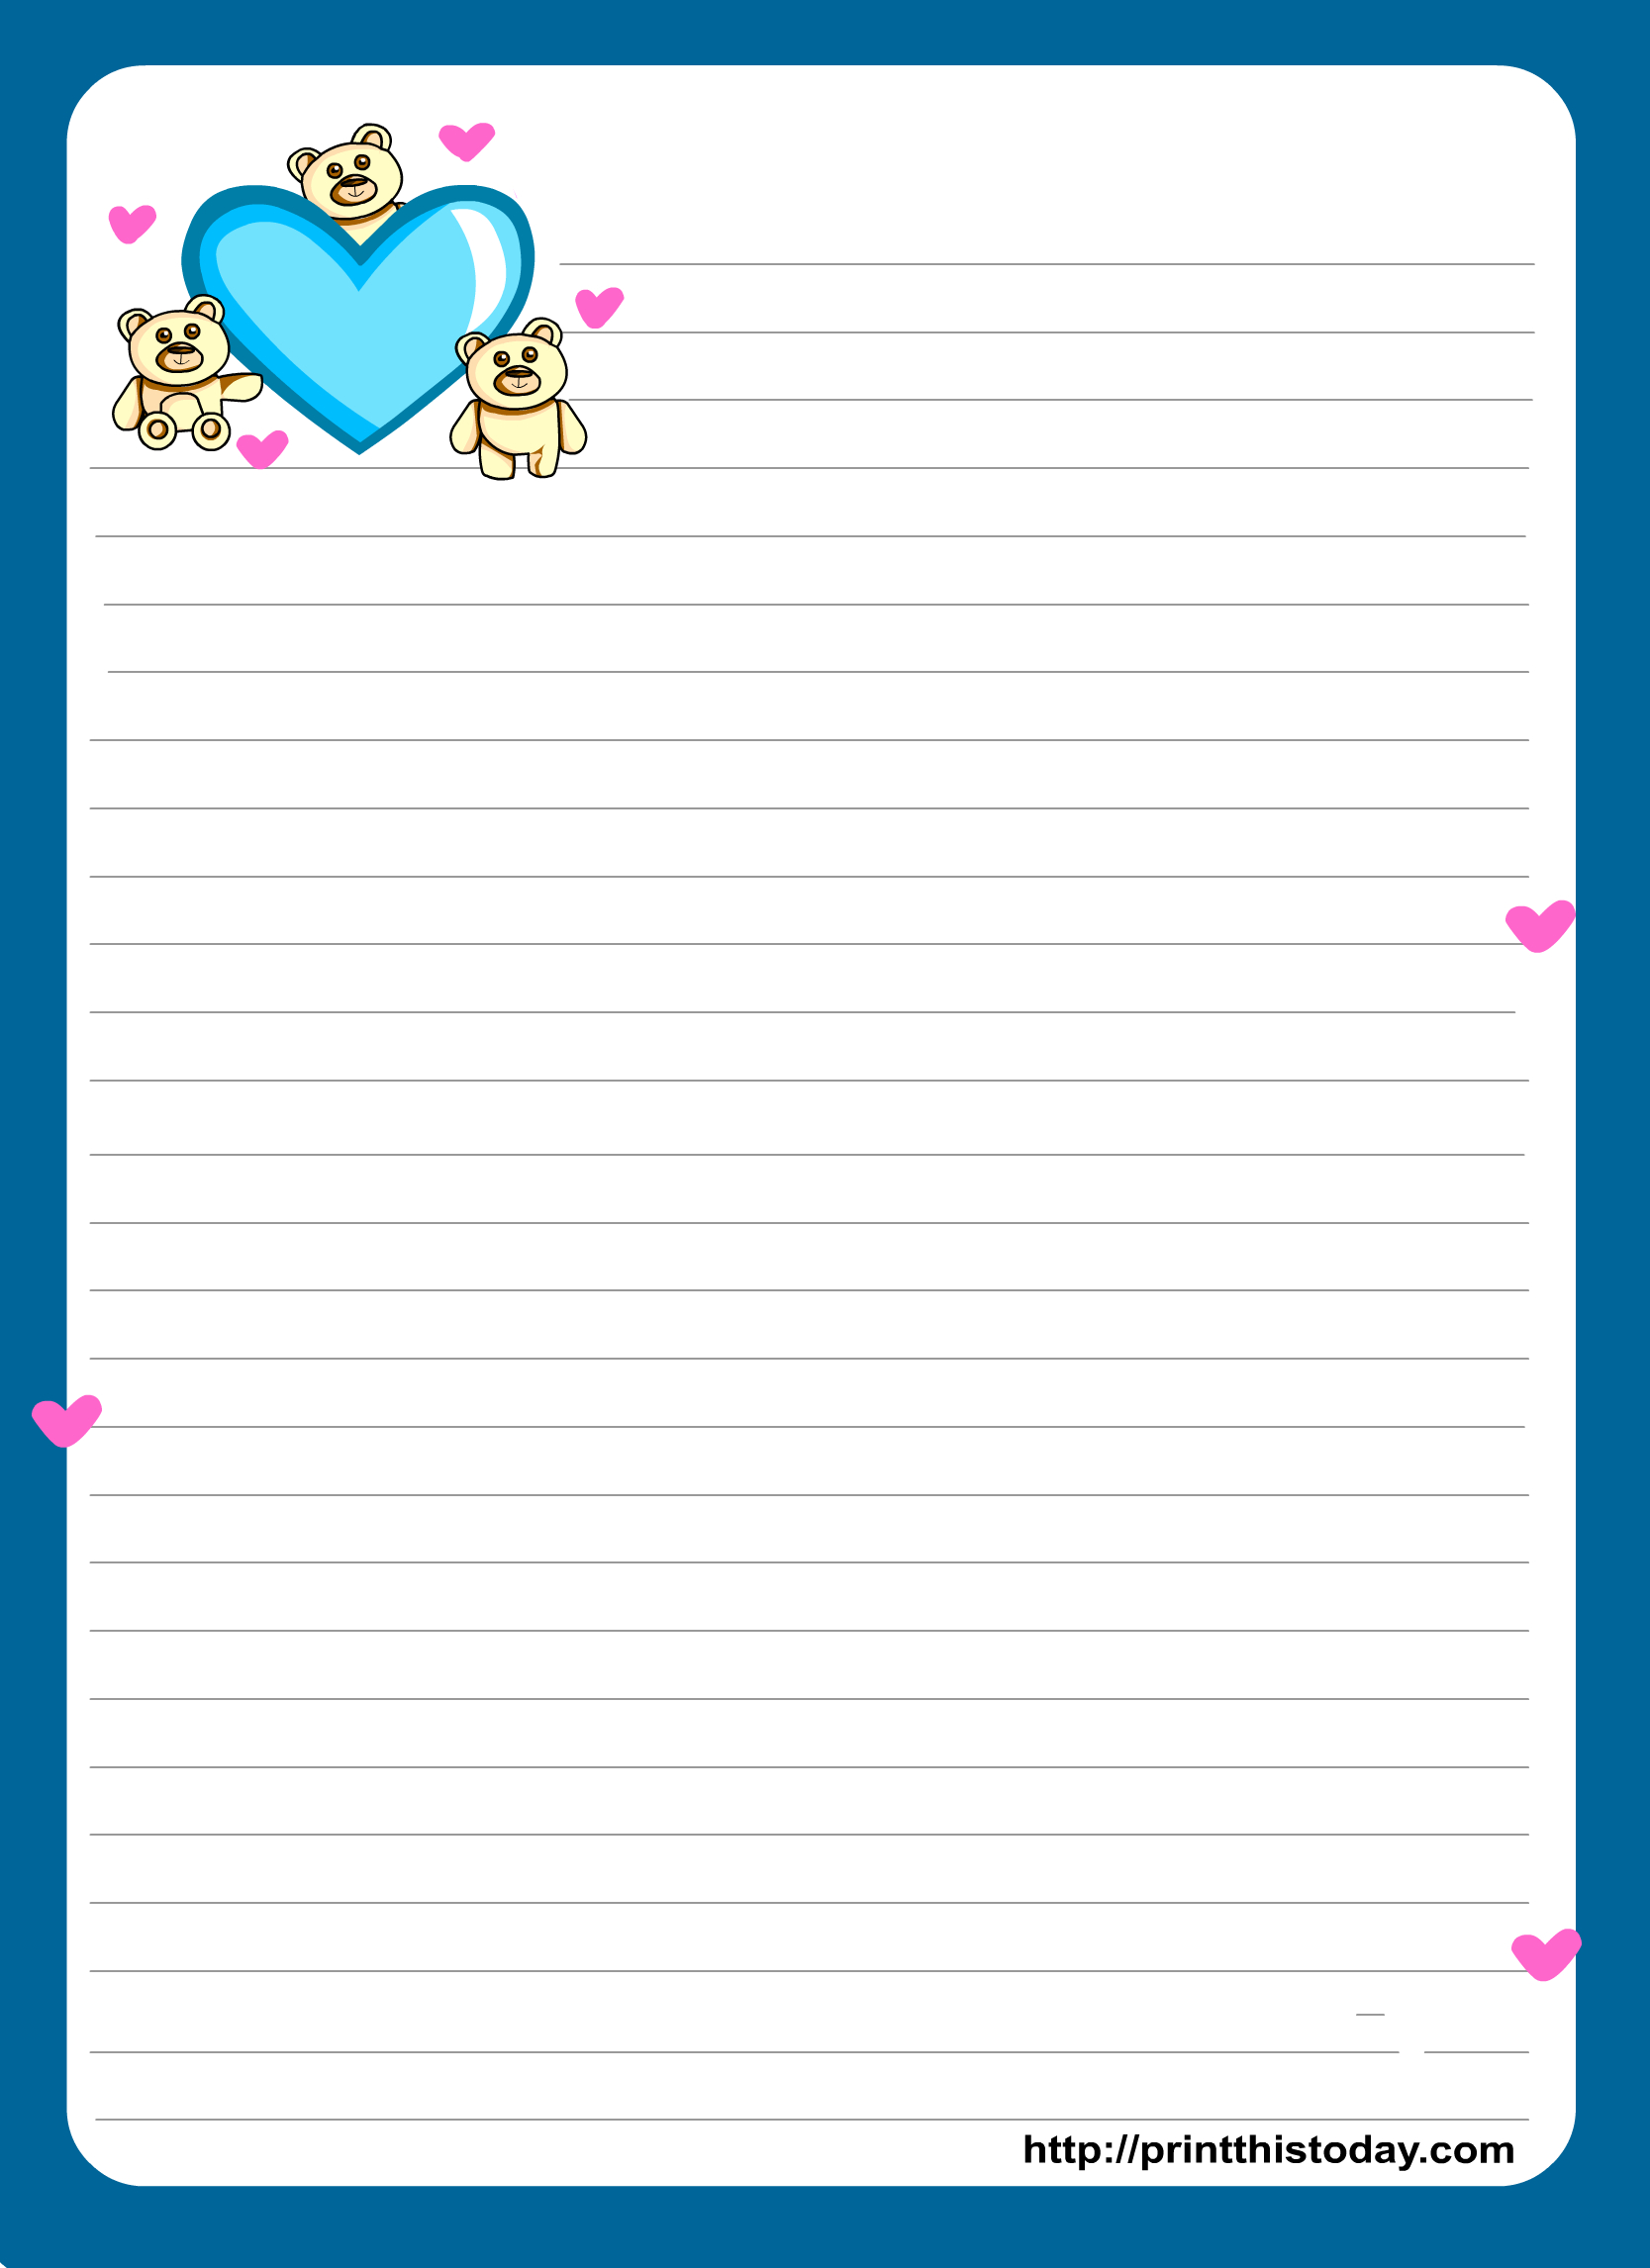 Miss You Love Letter Pad Stationery   Lined Stationery   Free - Free Printable Lined Stationery